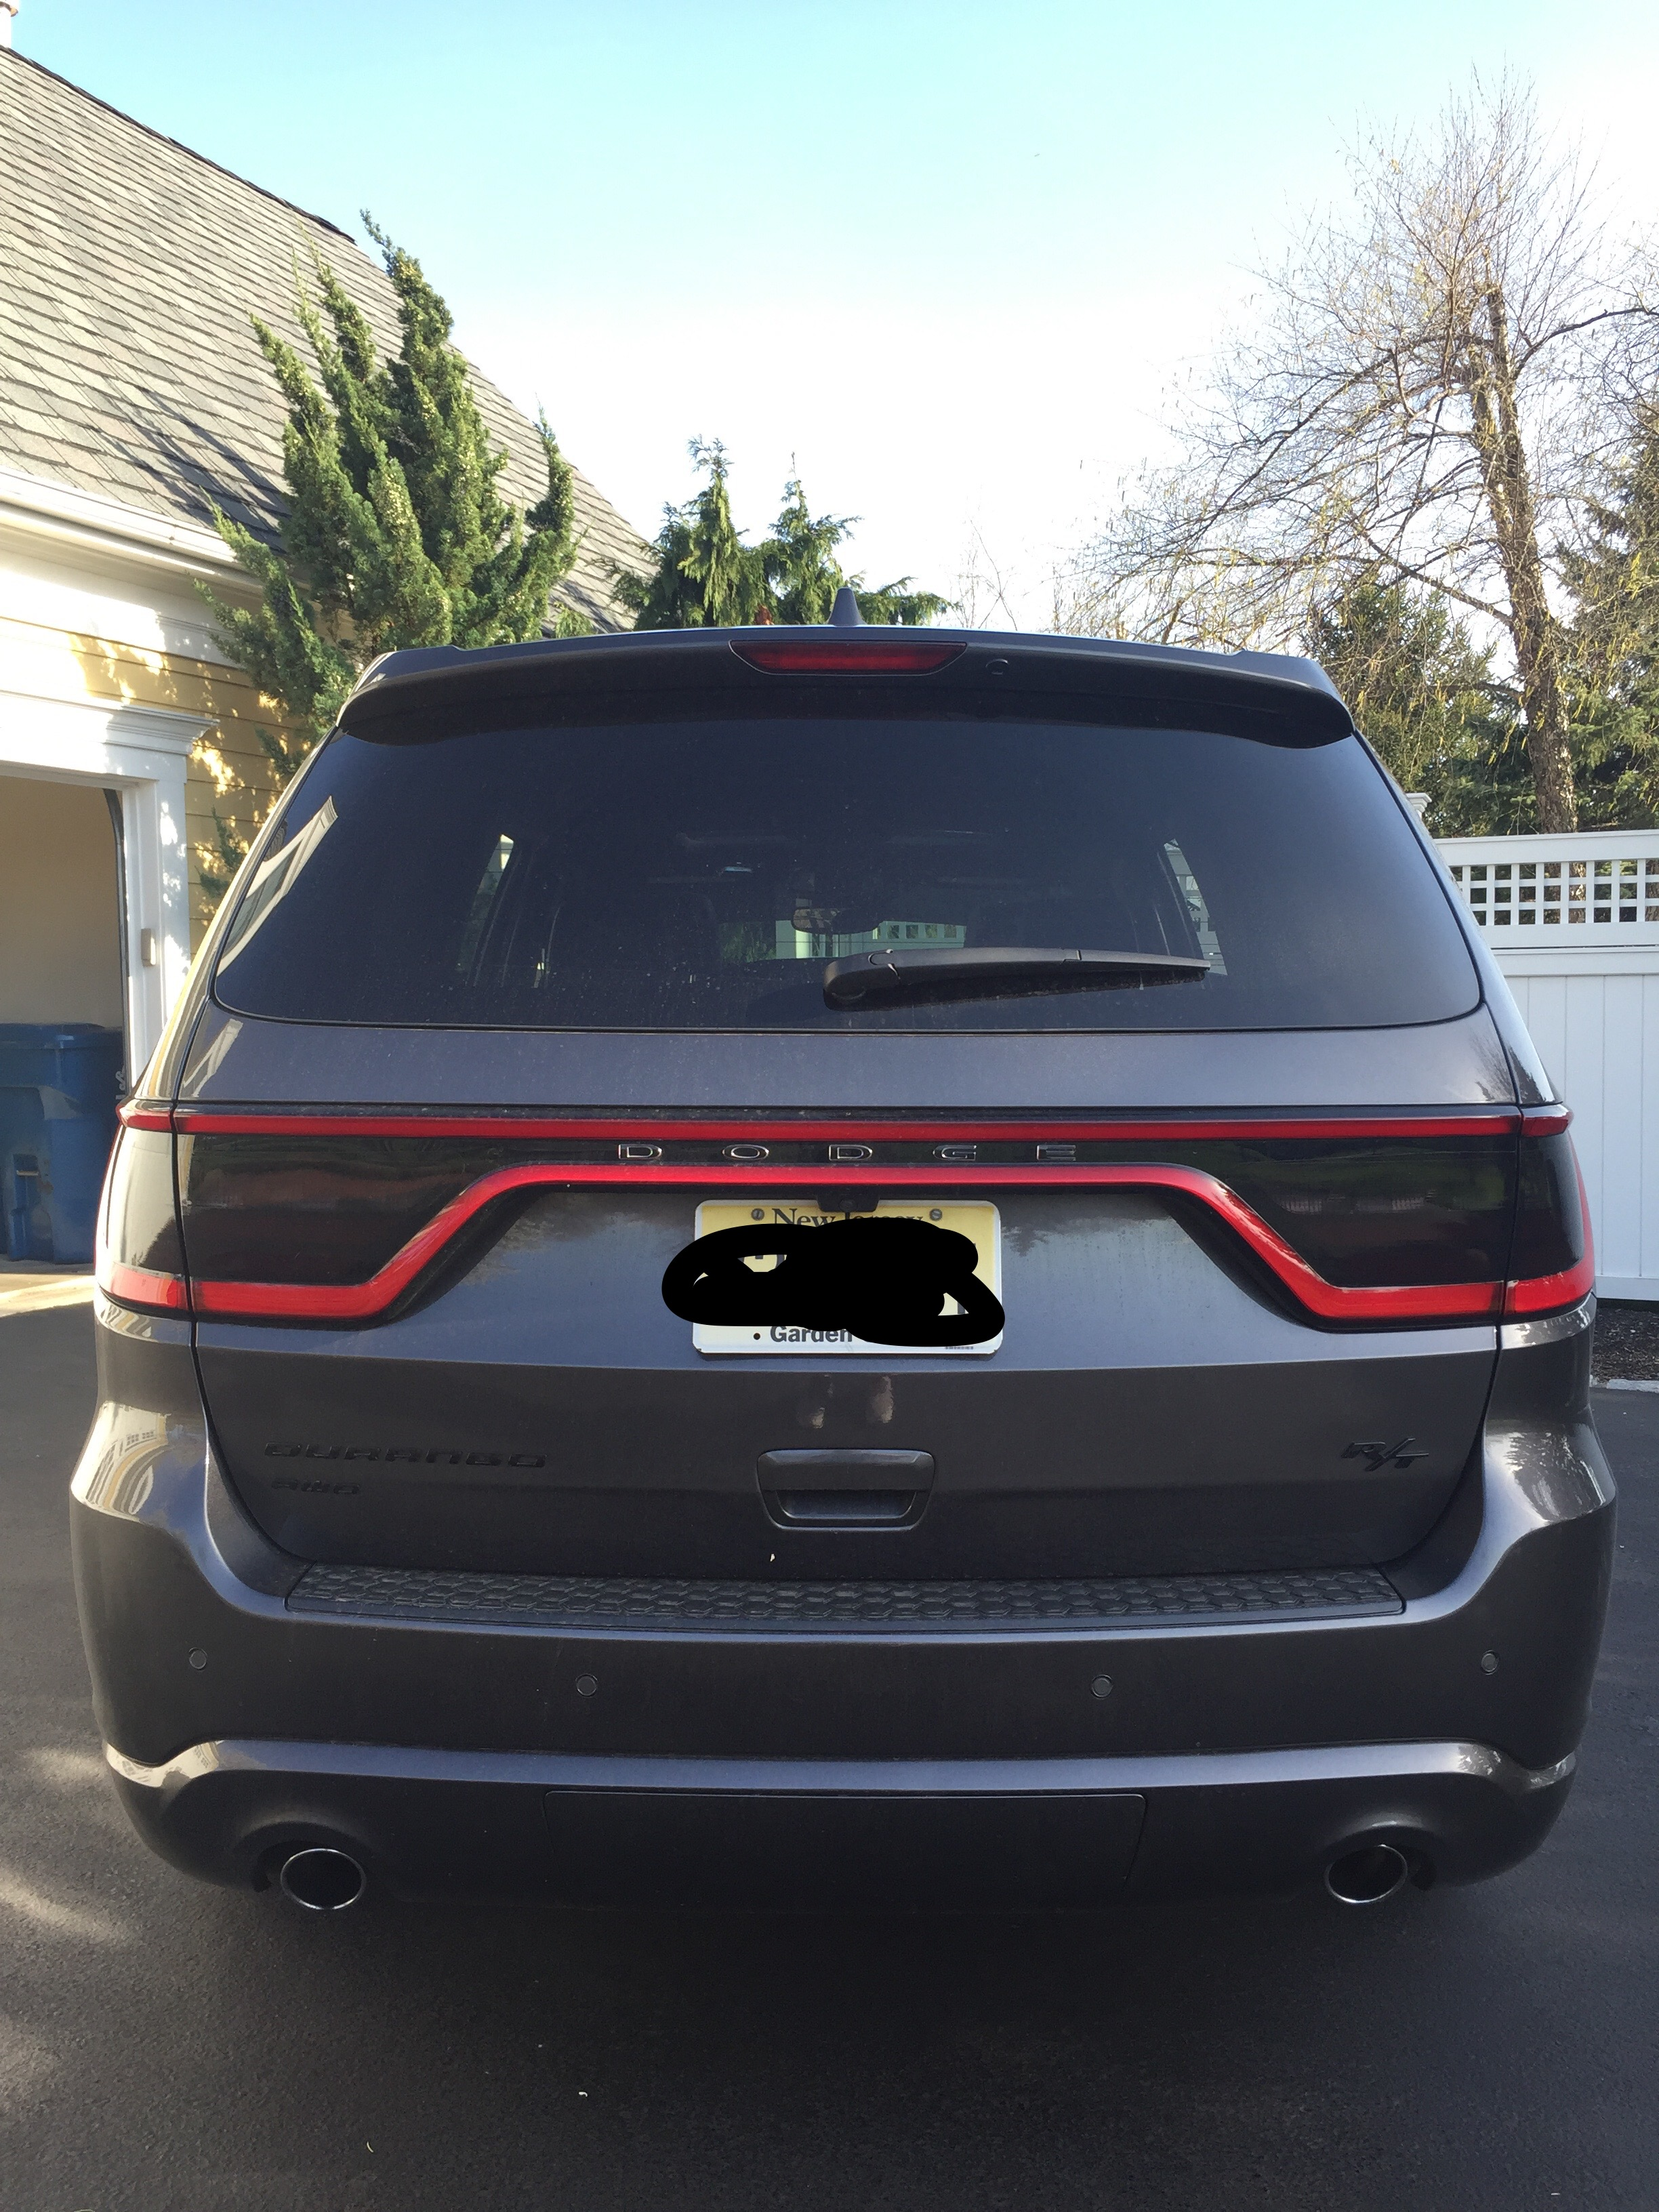 Experience With Luxe Tail Light Tint Img 8731 1492565265010 Jpg